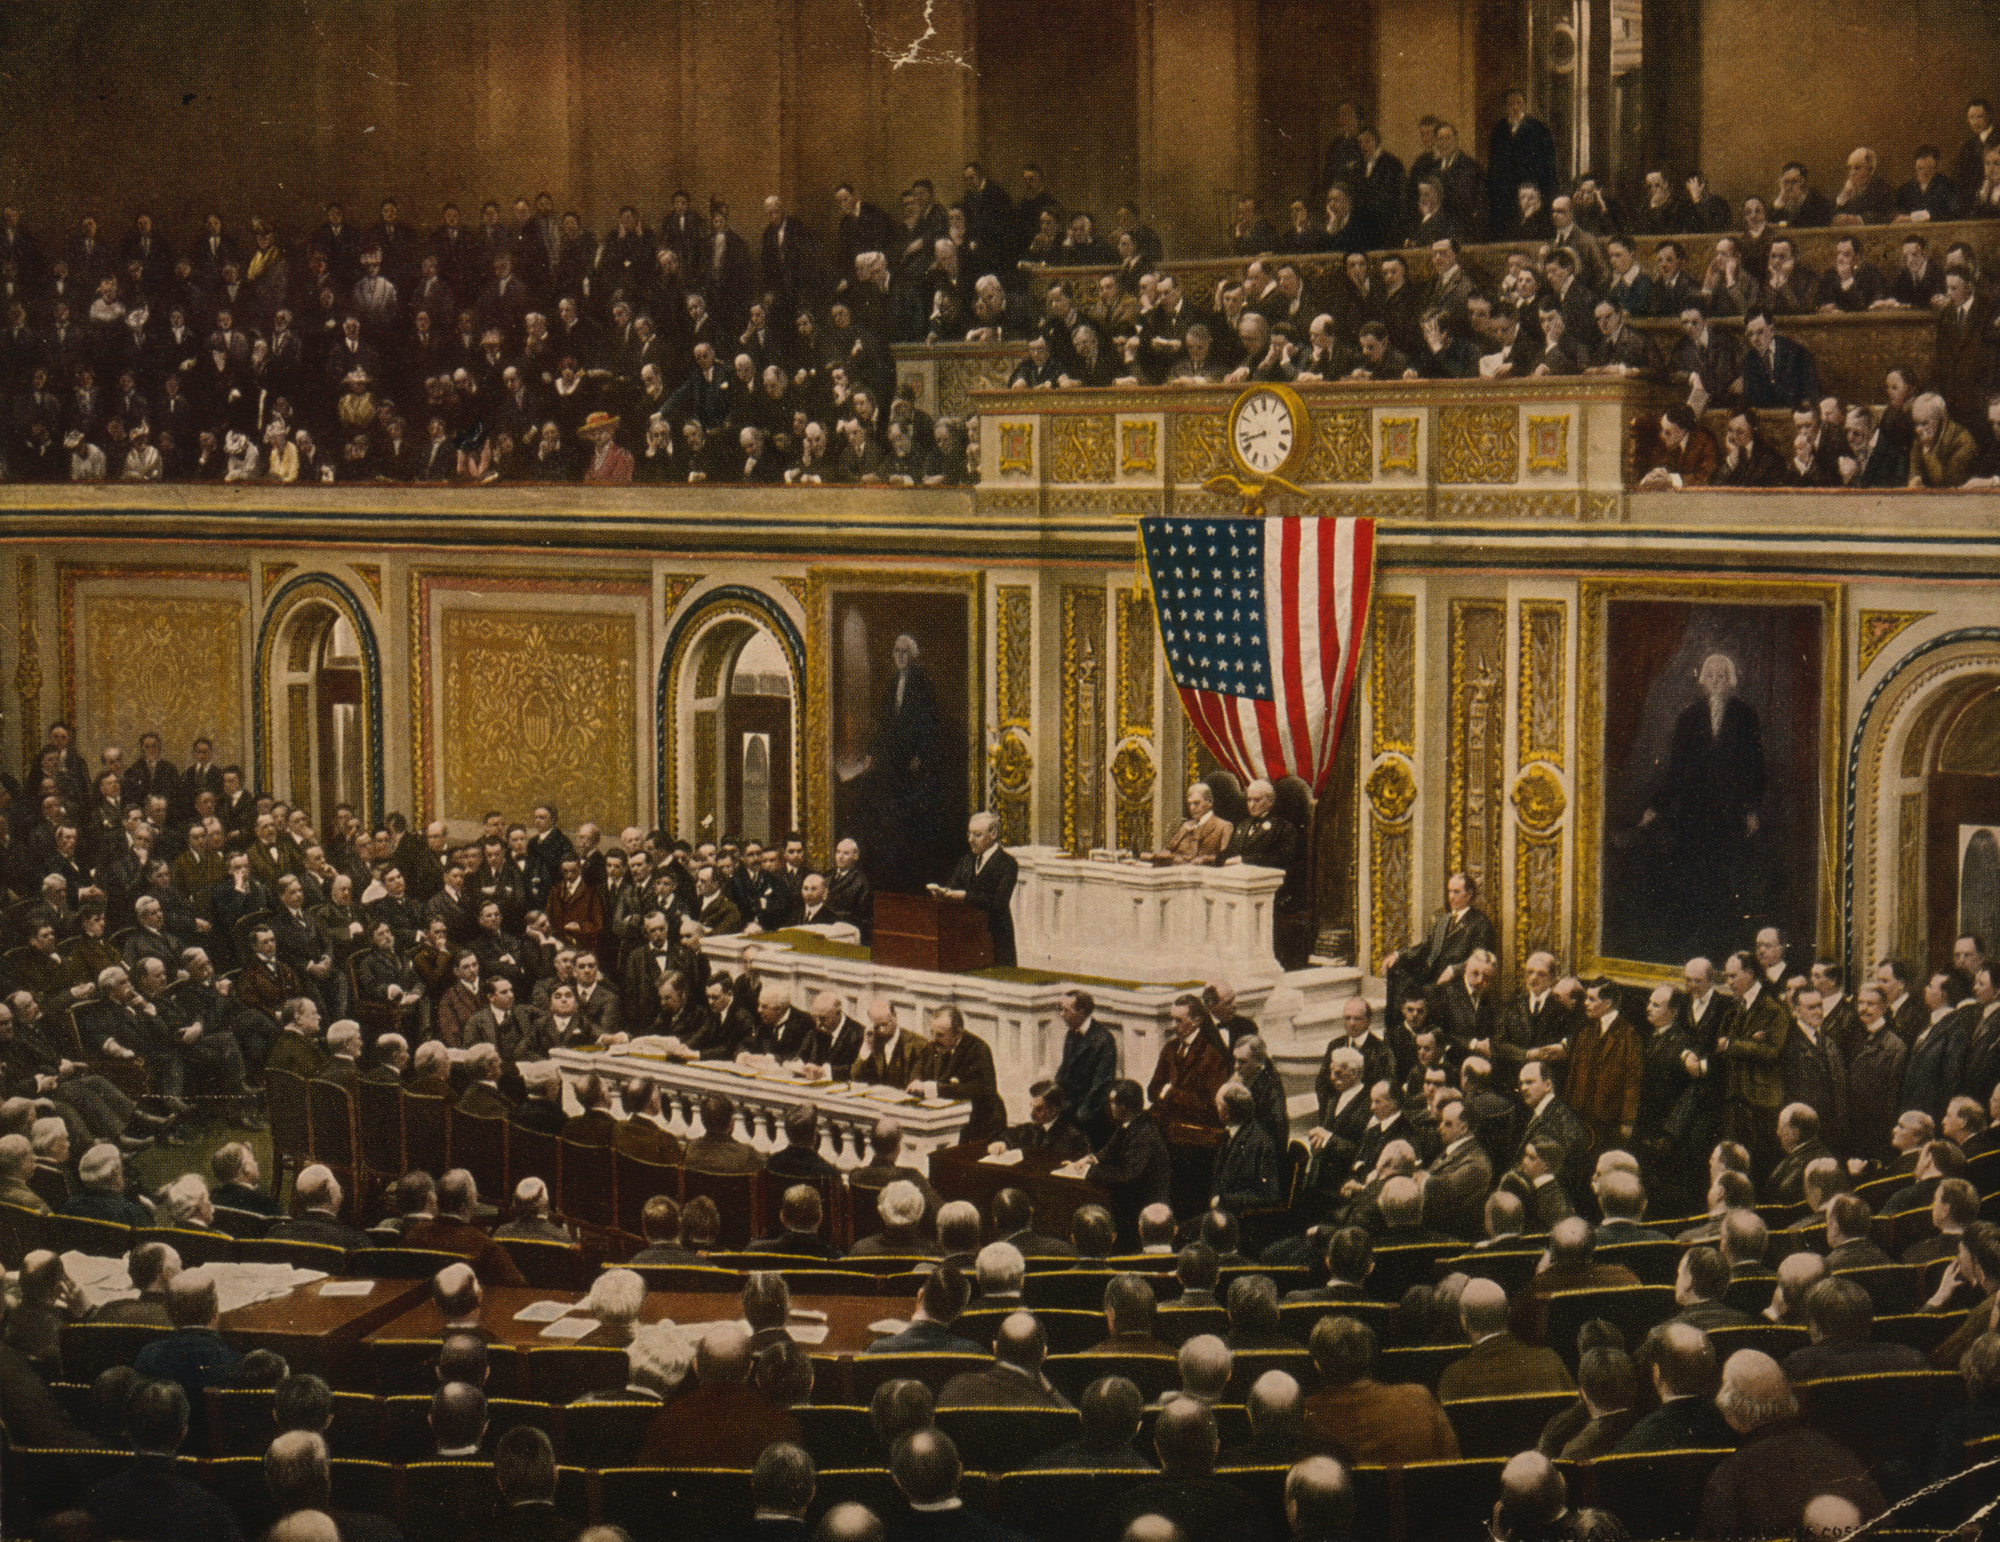 President Wilson announces the declaration of war to Congress, 1917.